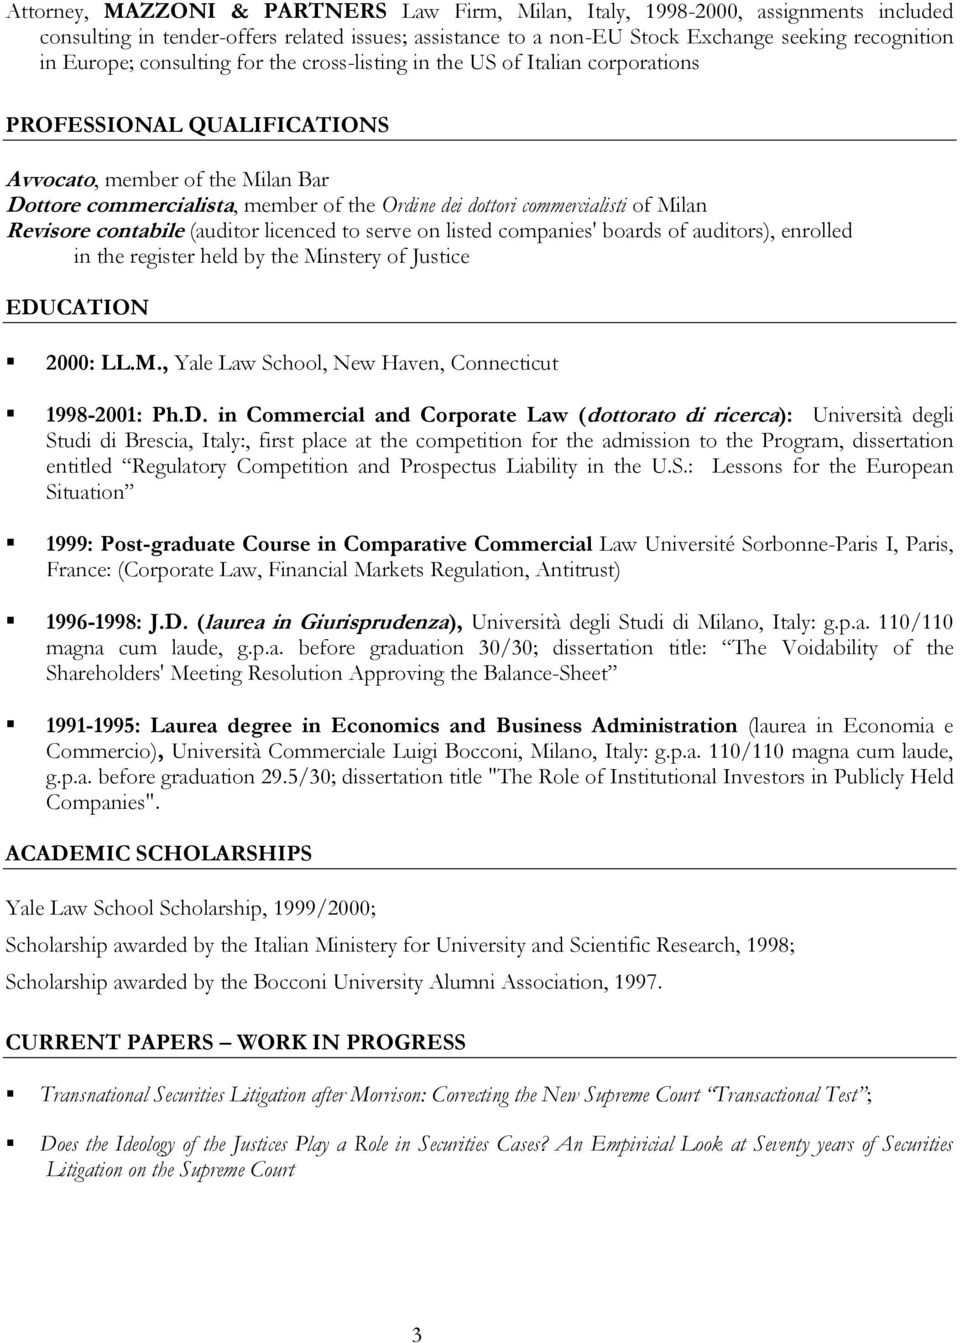 commercialisti of Milan Revisore contabile (auditor licenced to serve on listed companies' boards of auditors), enrolled in the register held by the Minstery of Justice EDUCATION 2000: LL.M., Yale Law School, New Haven, Connecticut 1998-2001: Ph.